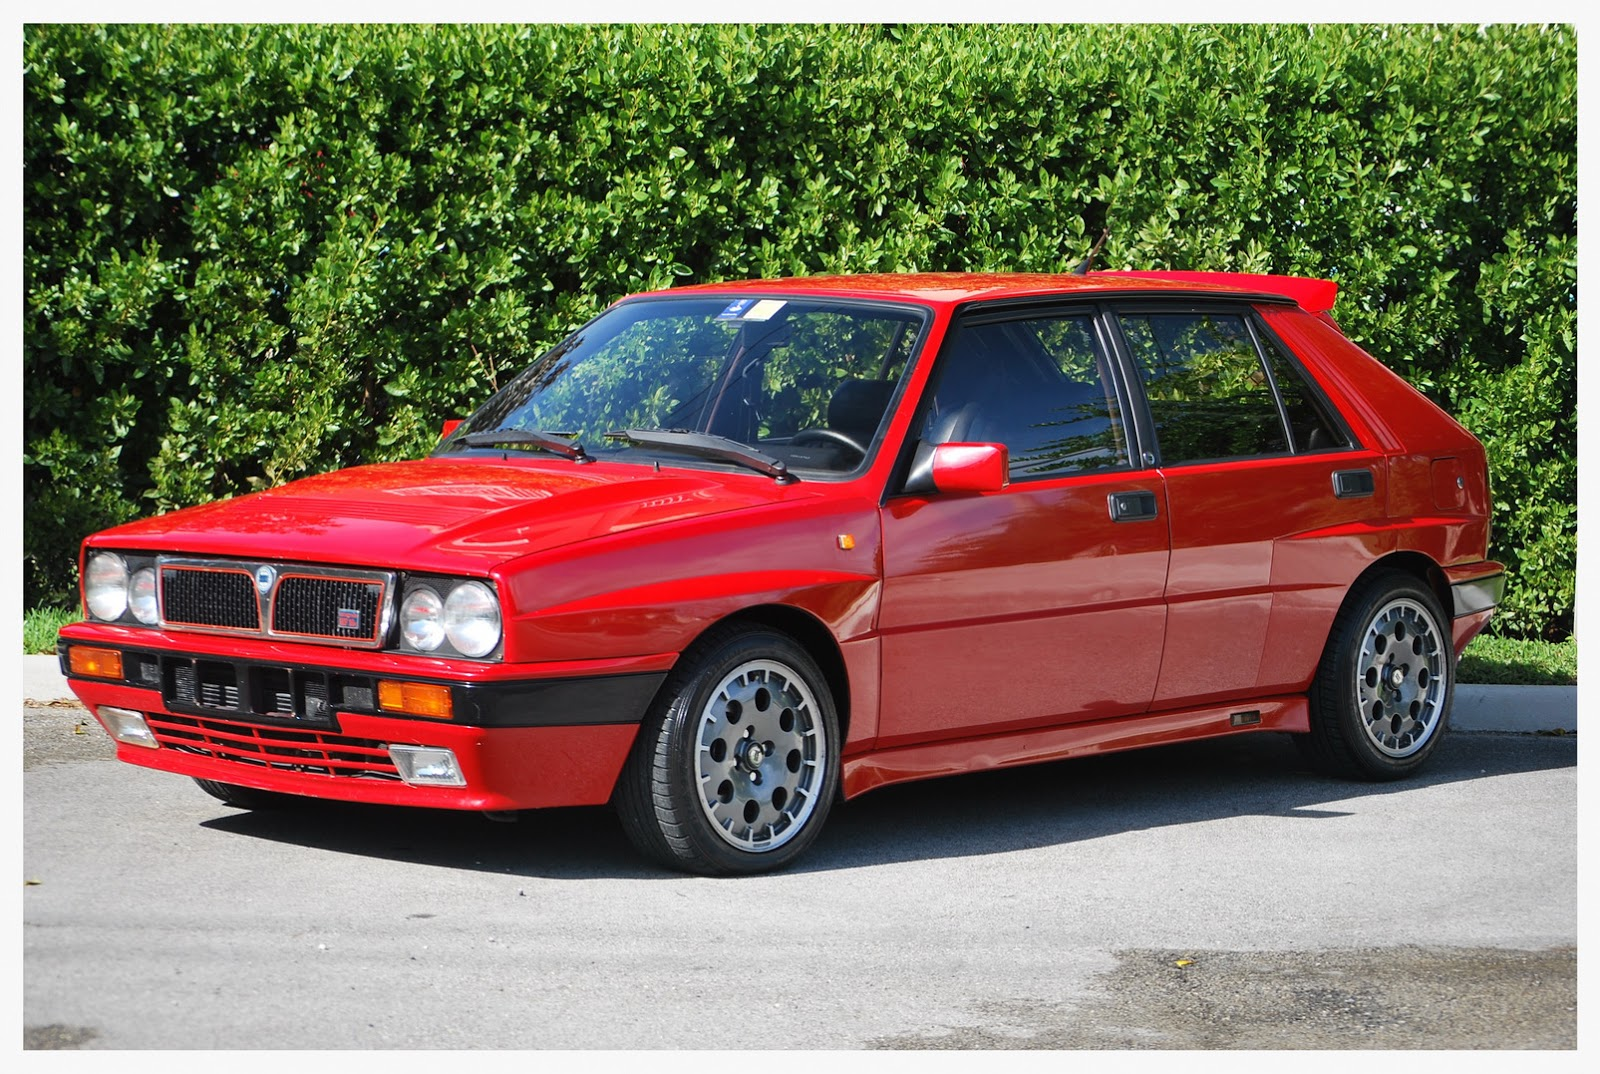 Image result for lancia delta hf integrale 8v